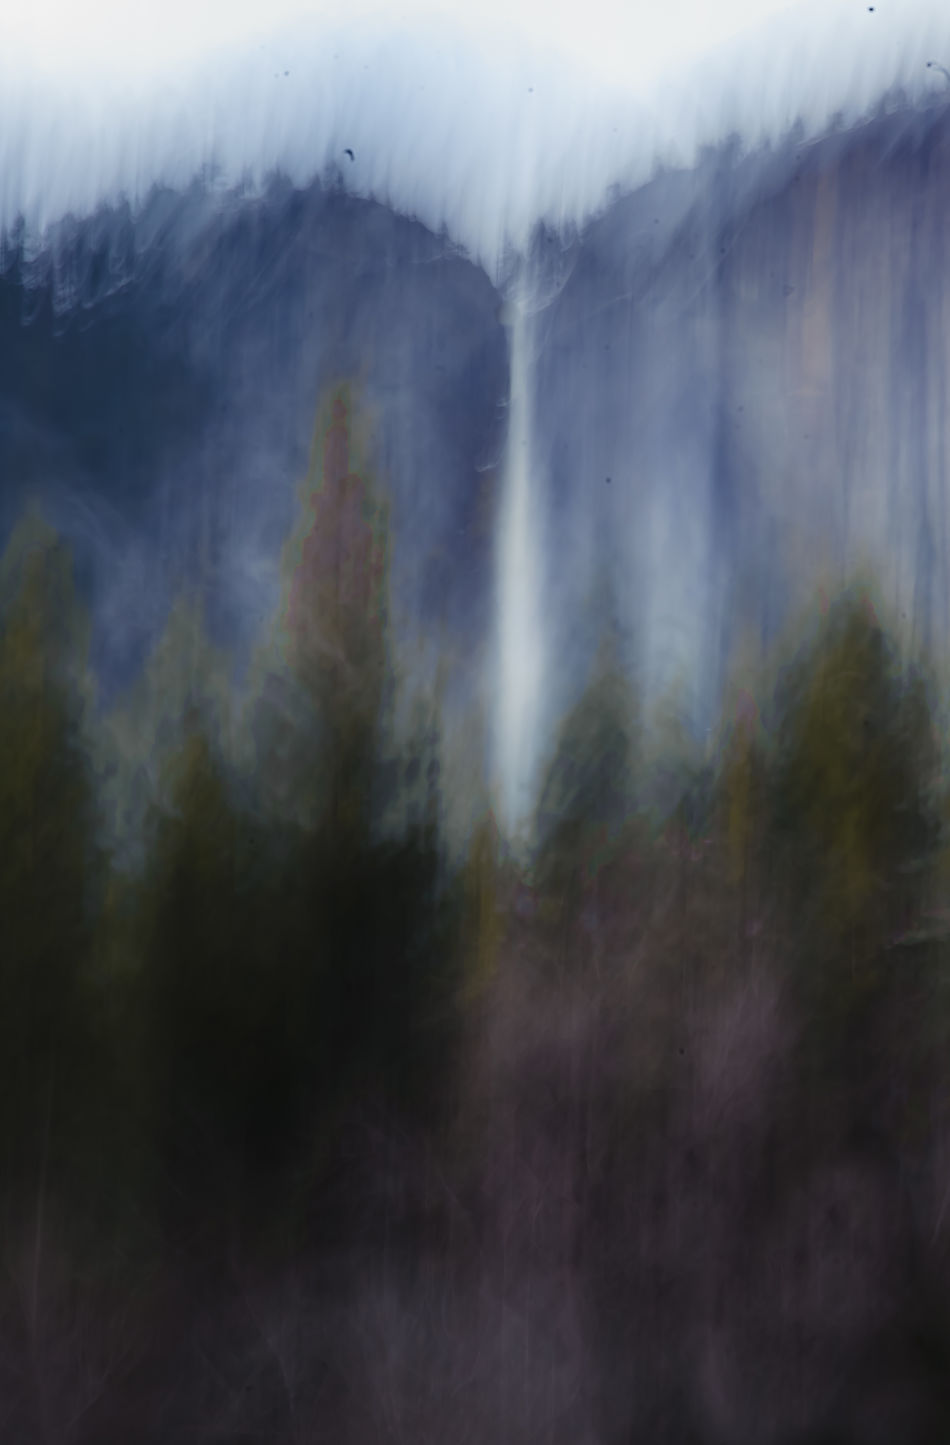 Abstract Beauty In Nature Landscape Moonlight Moonlit Nature Night Night Scene Night Sky No People Outdoors Scenics Selective Focus Tranquility Waterfall Abstract Yosemite Yosemite Fall Yosemite National Park Pivotal Ideas